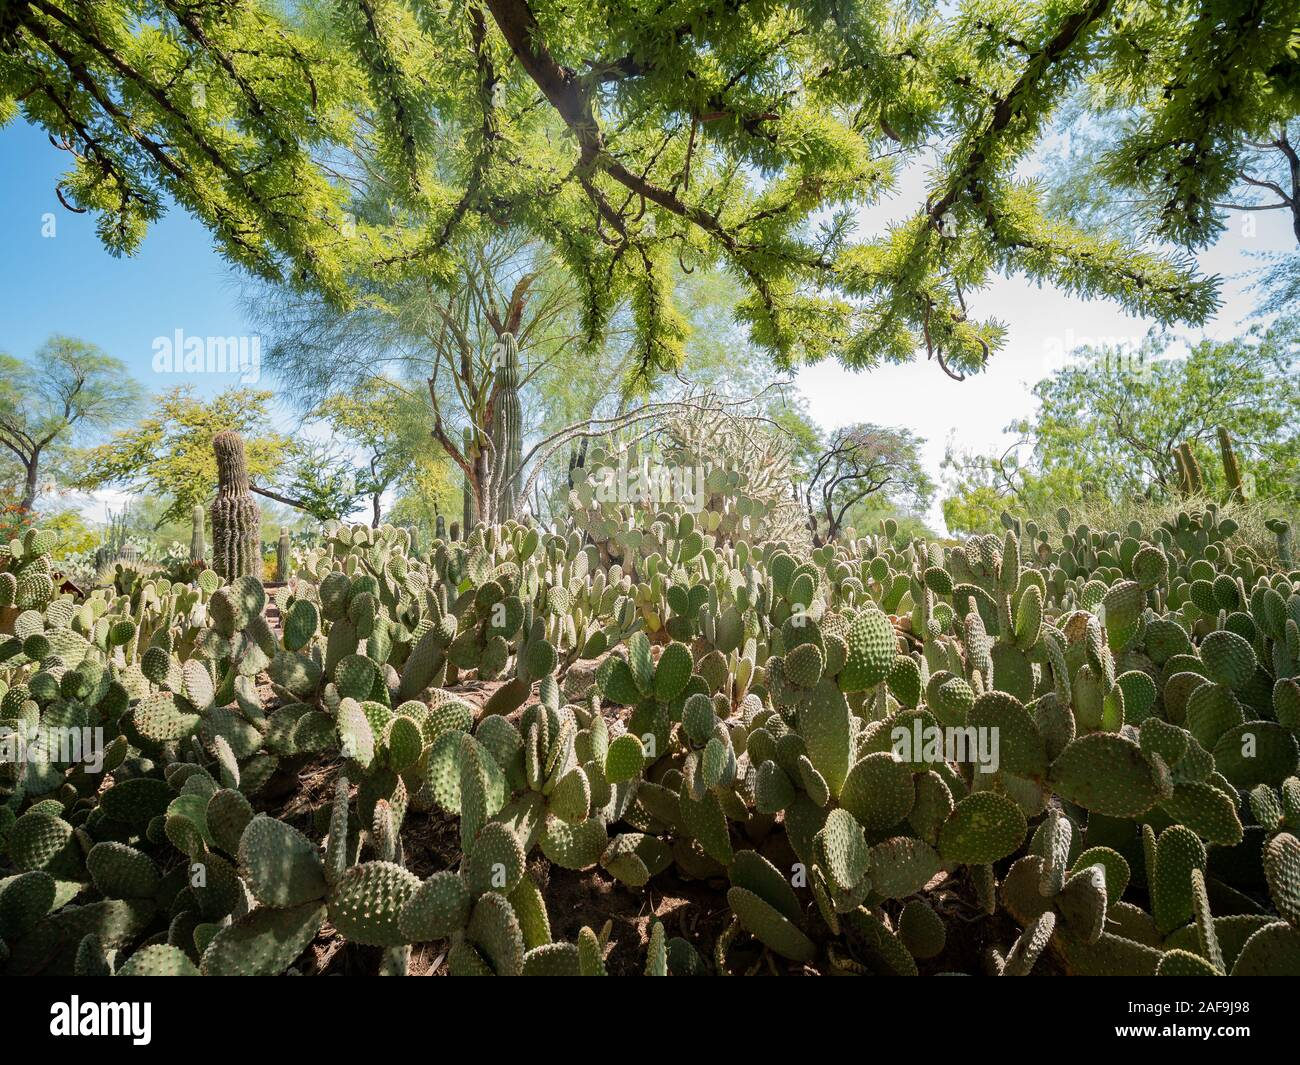 Exterior View Of The Famous Cactus Garden Of Ethel M Chocolate Factory At Las Vegas Henderson Stock Photo Alamy